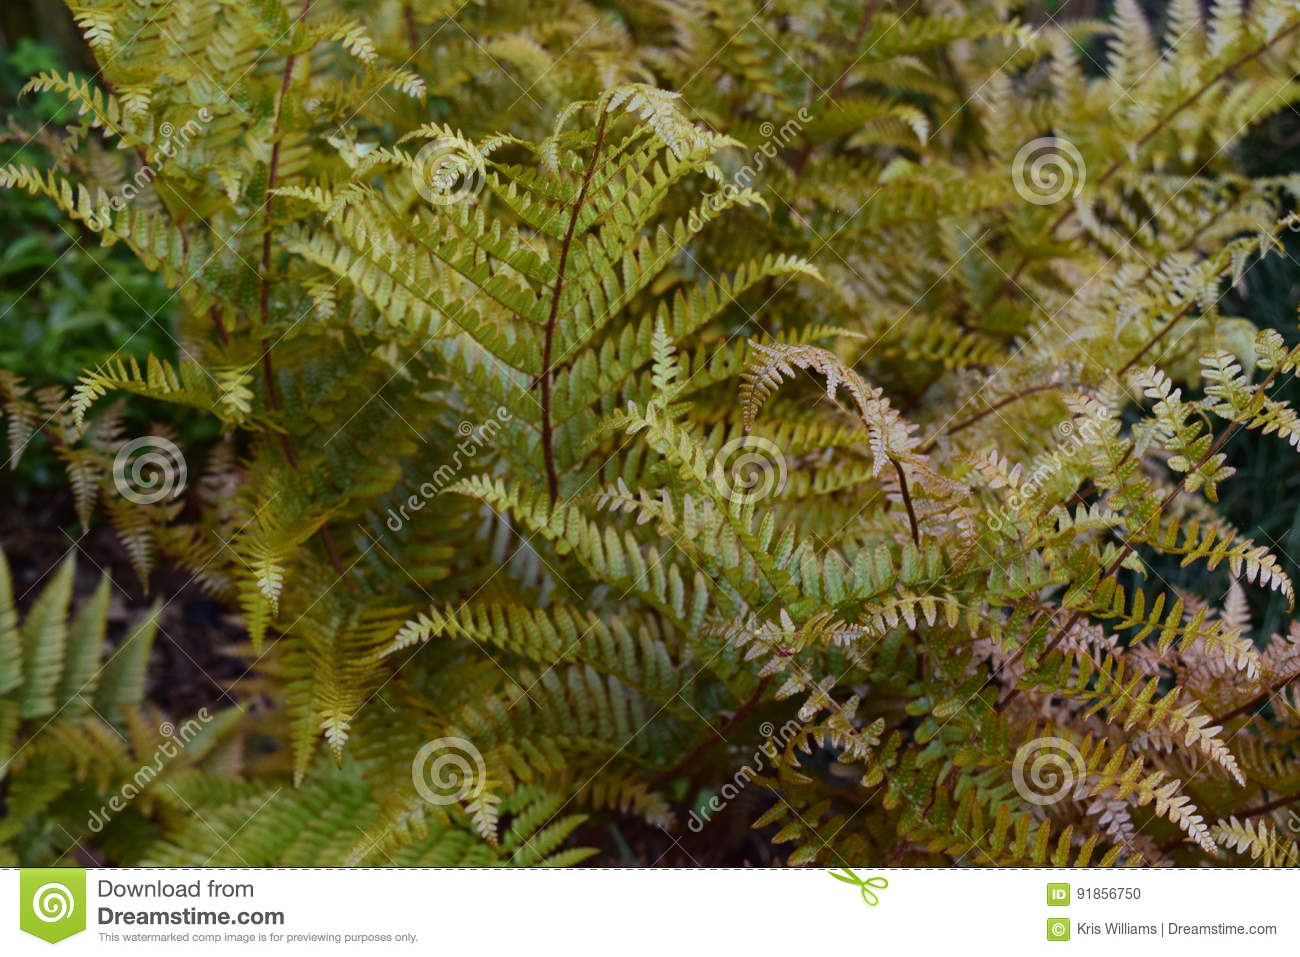 Delicate green ferns with dainty leaves